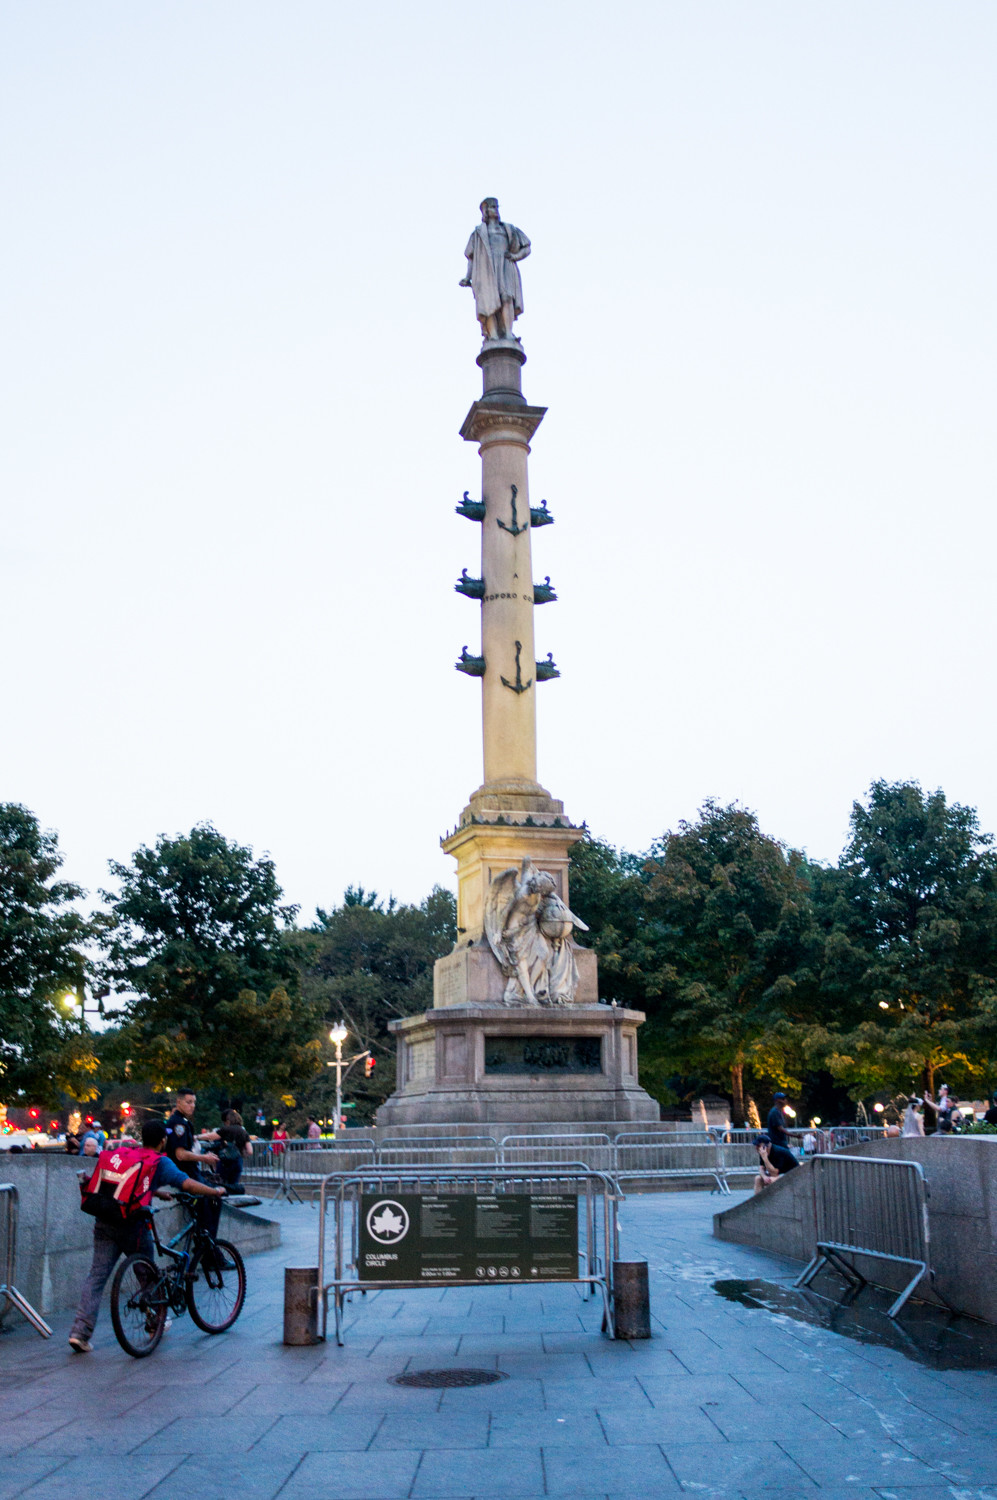 Police officers and barricades guard the statue of Christopher Columbus in Manhattan's Columbus Circle ahead of Columbus Day.